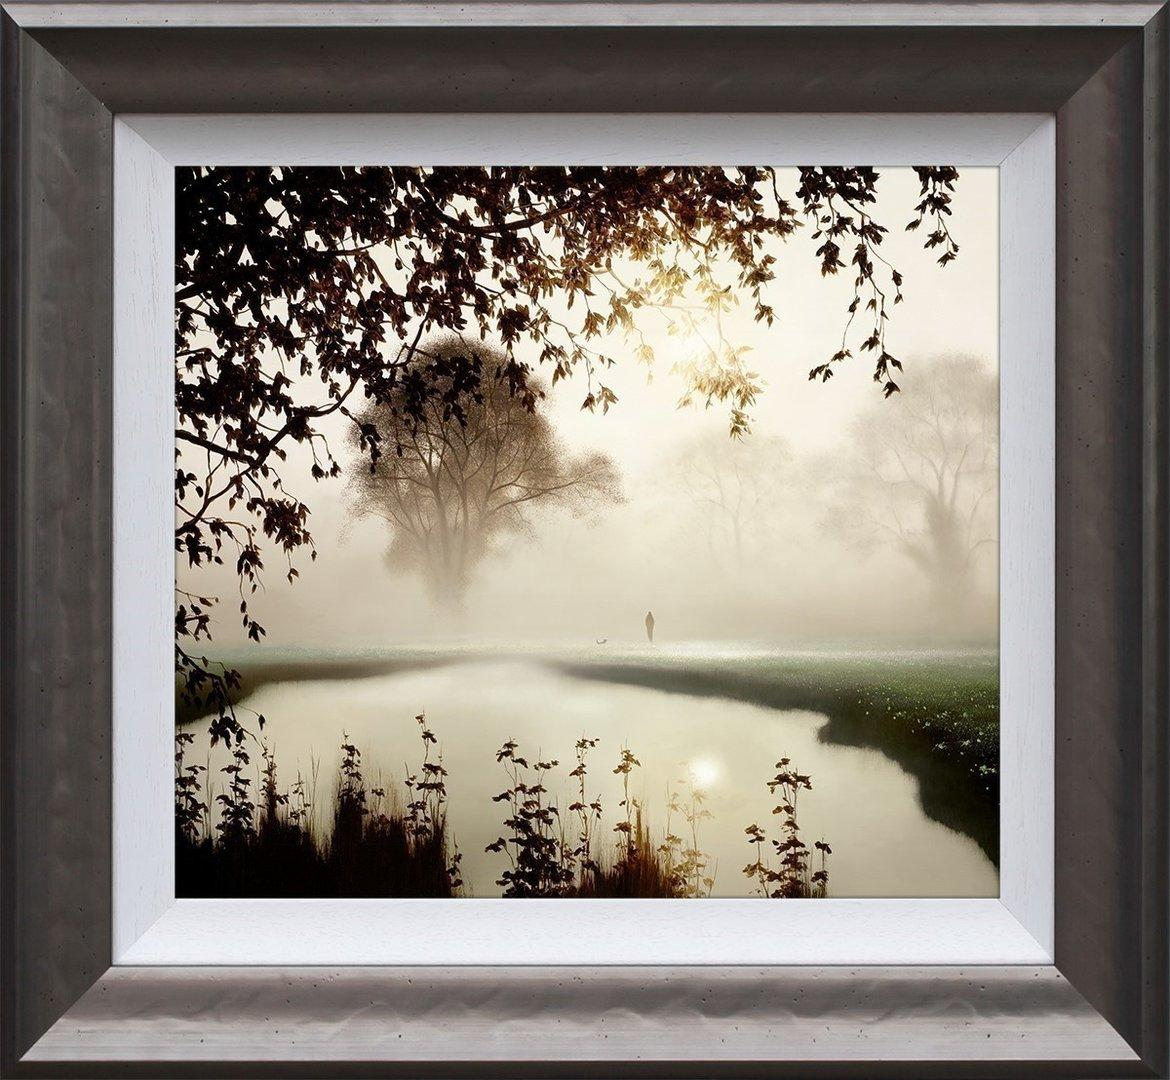 A Time for Reflection by John Waterhouse - art print ZWTR065